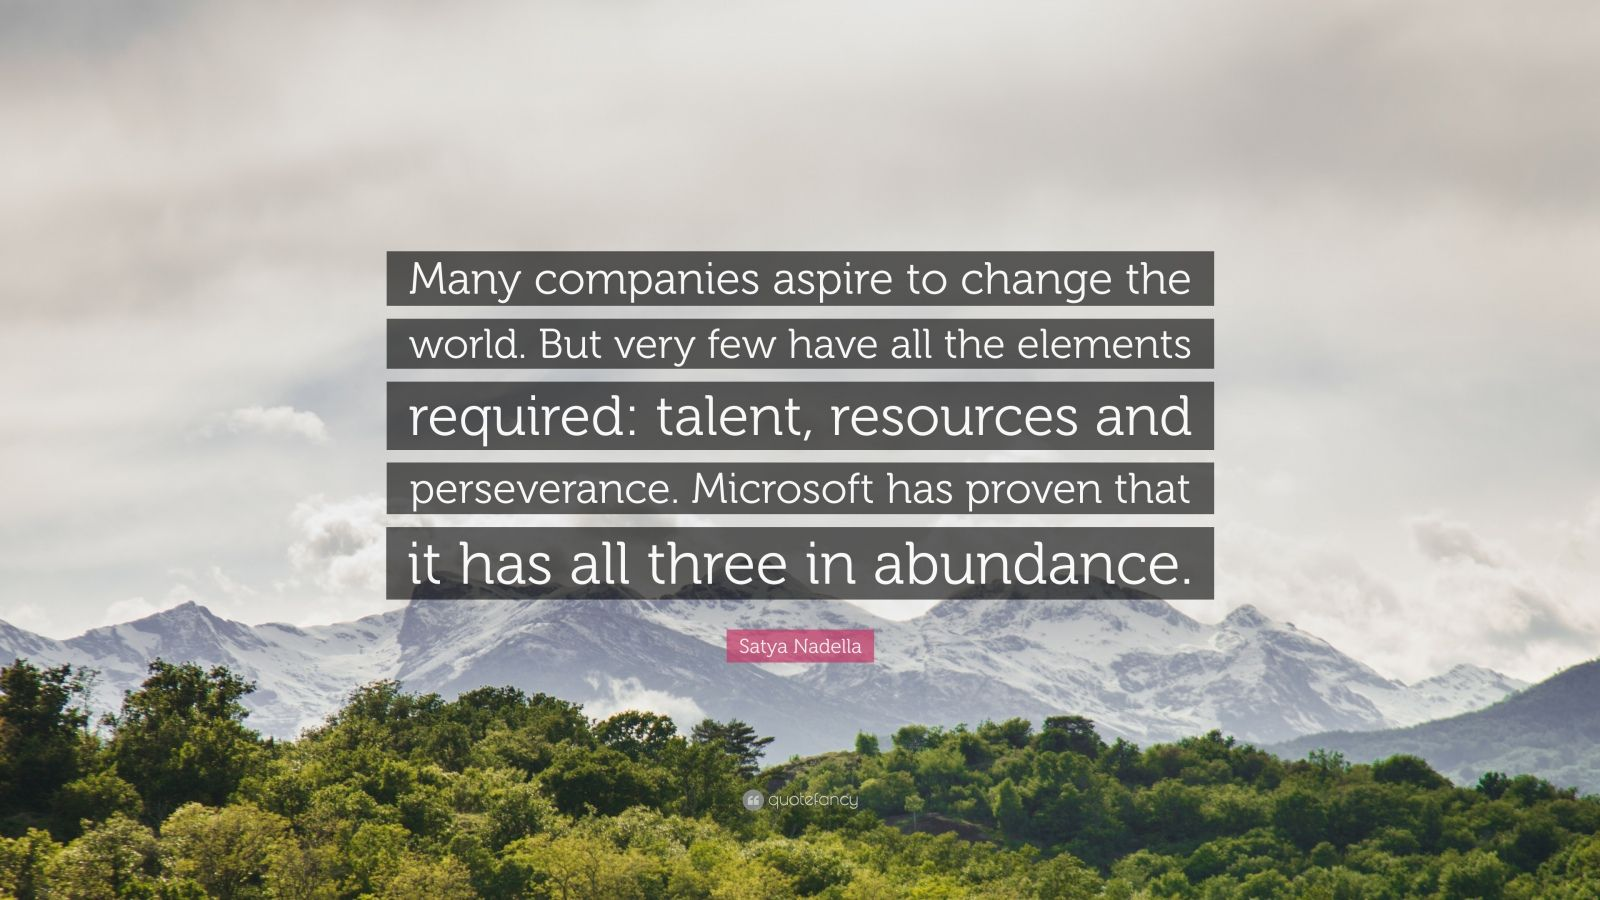 """Satya Nadella Quote: """"Many companies aspire to change the world. But very few have all the elements required: talent, resources and perseverance. Microsoft has proven that it has all three in abundance."""""""